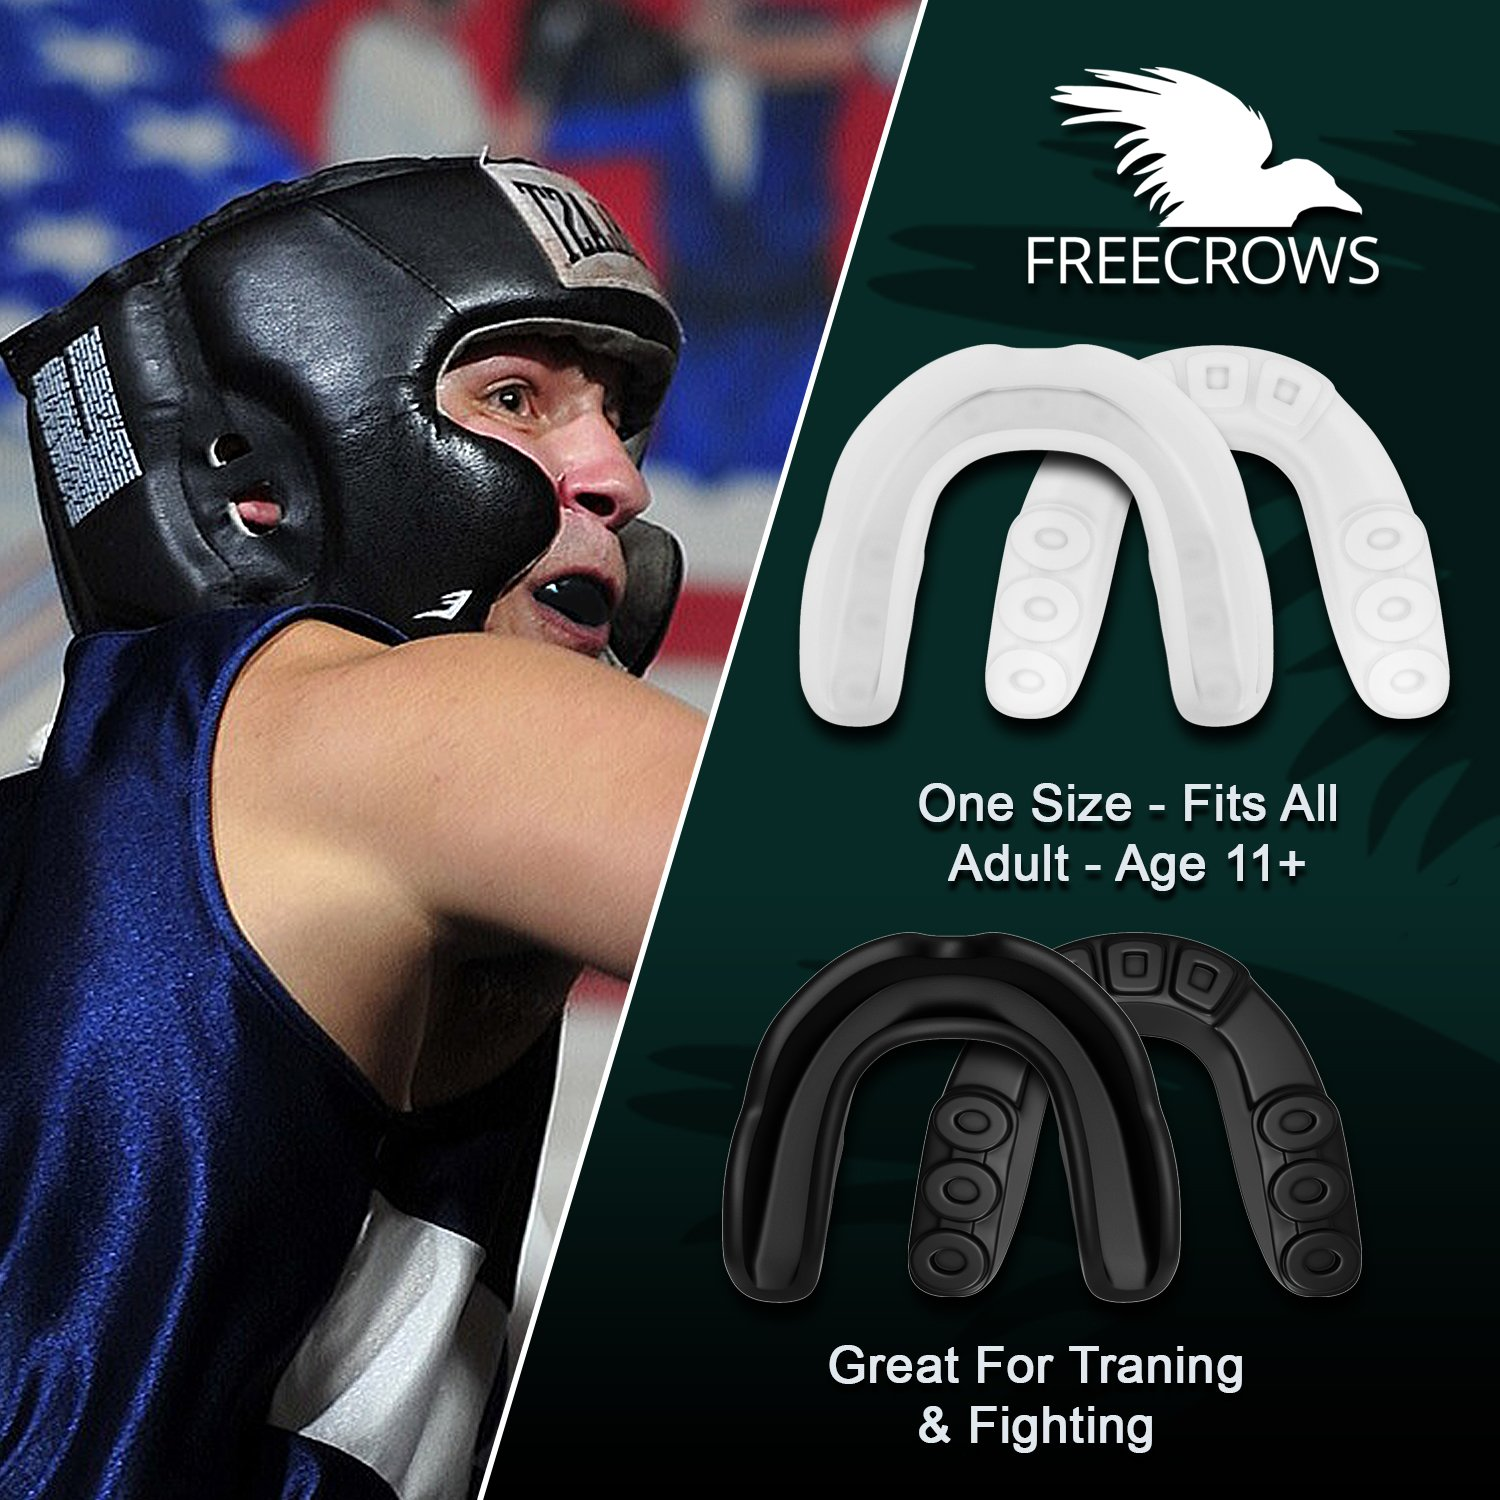 MMA Mouthguard / Adult Mouth Guard - 2x Gum Shield Teeth Protection for all Contact Sports and Game - UFC , Boxing , Taekwondo , Martial Arts , etc.- Two Mouthguards for Women and Men by Freecrows by FREECROWS (Image #2)